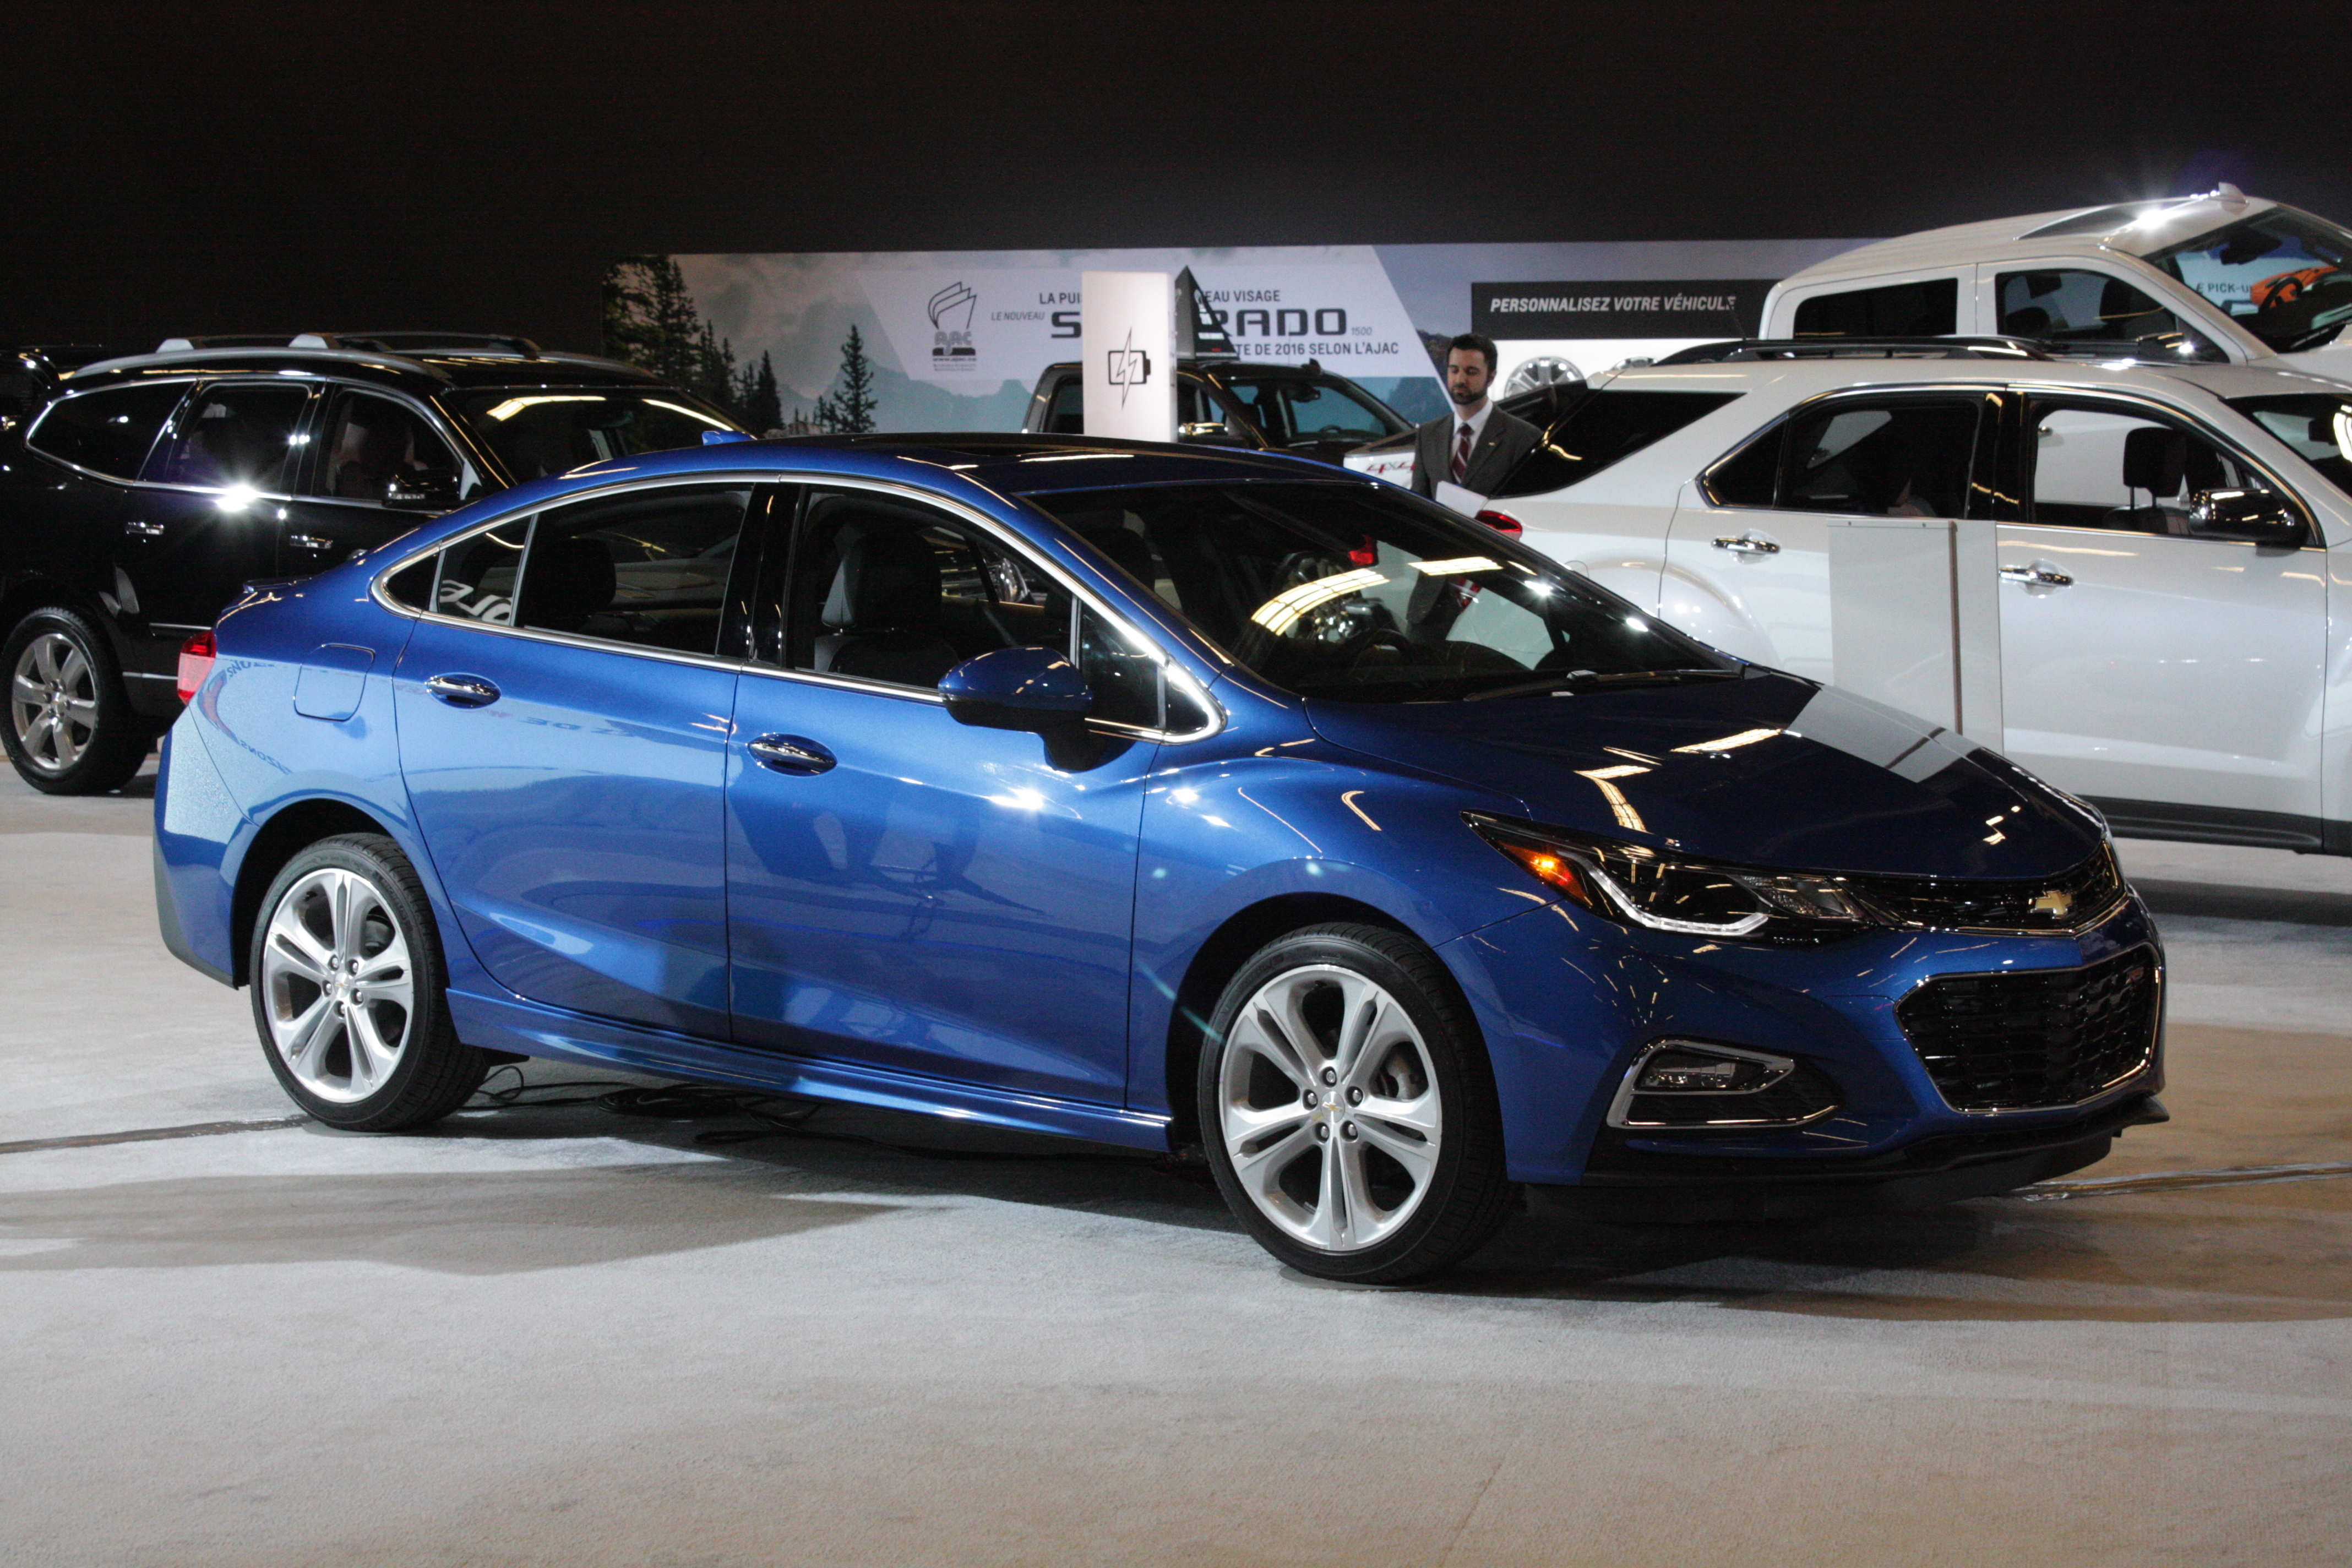 ... the Cruze compact sedan, wearing slick new styling and powered by a new 1.4L turbocharged engine...